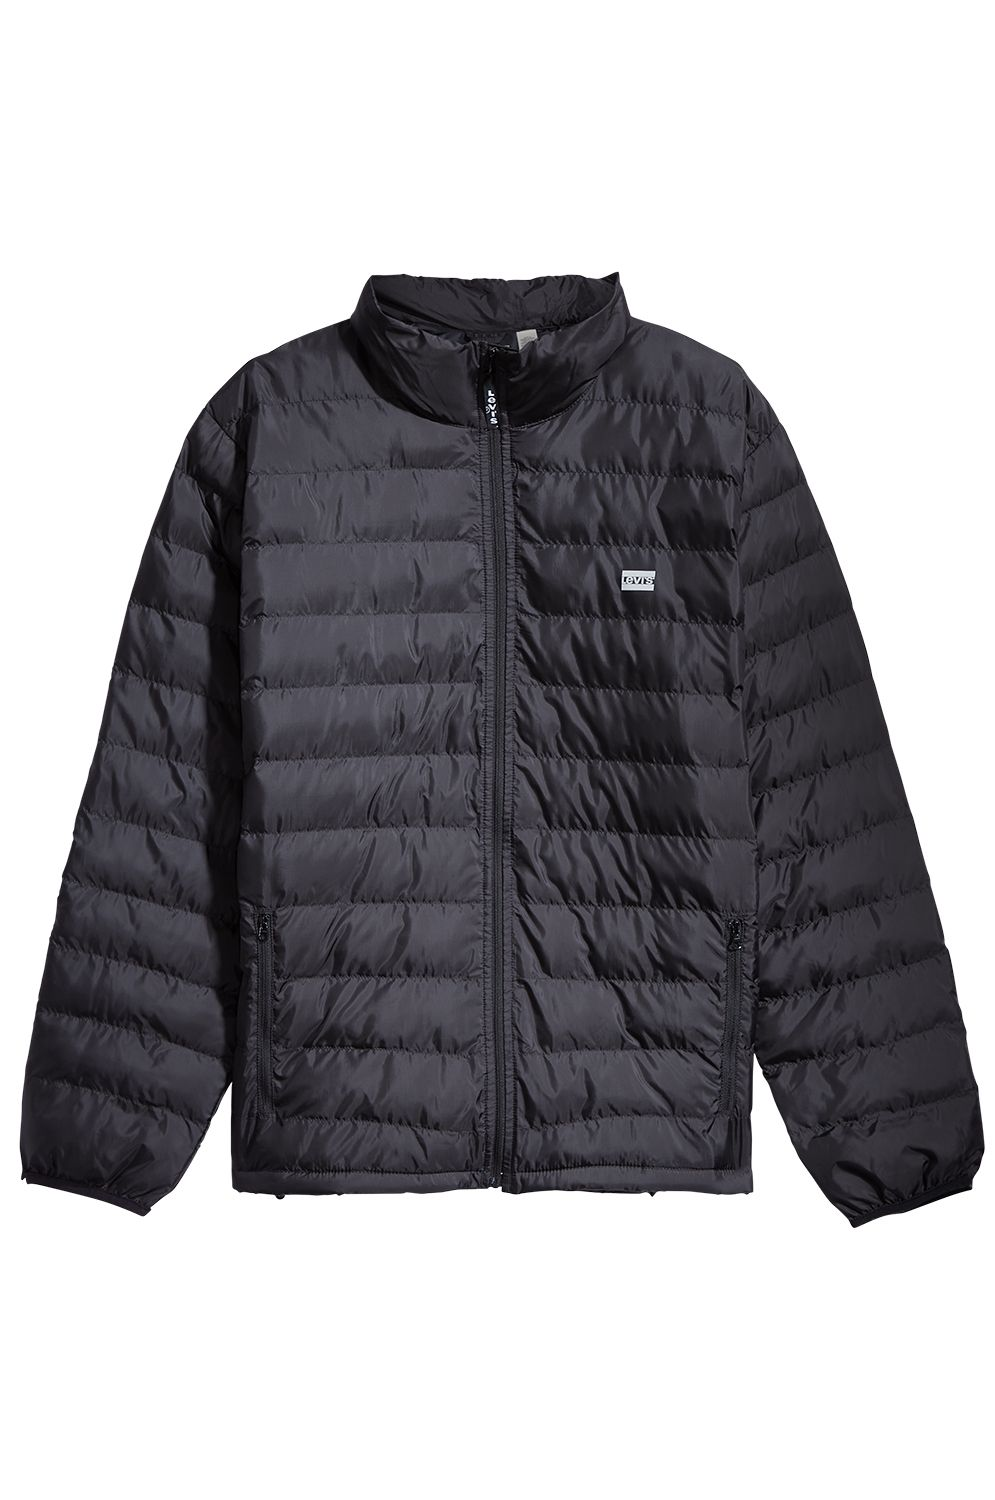 Blusão Levis PRESIDIO PACKABLE JACKET Mineral Black